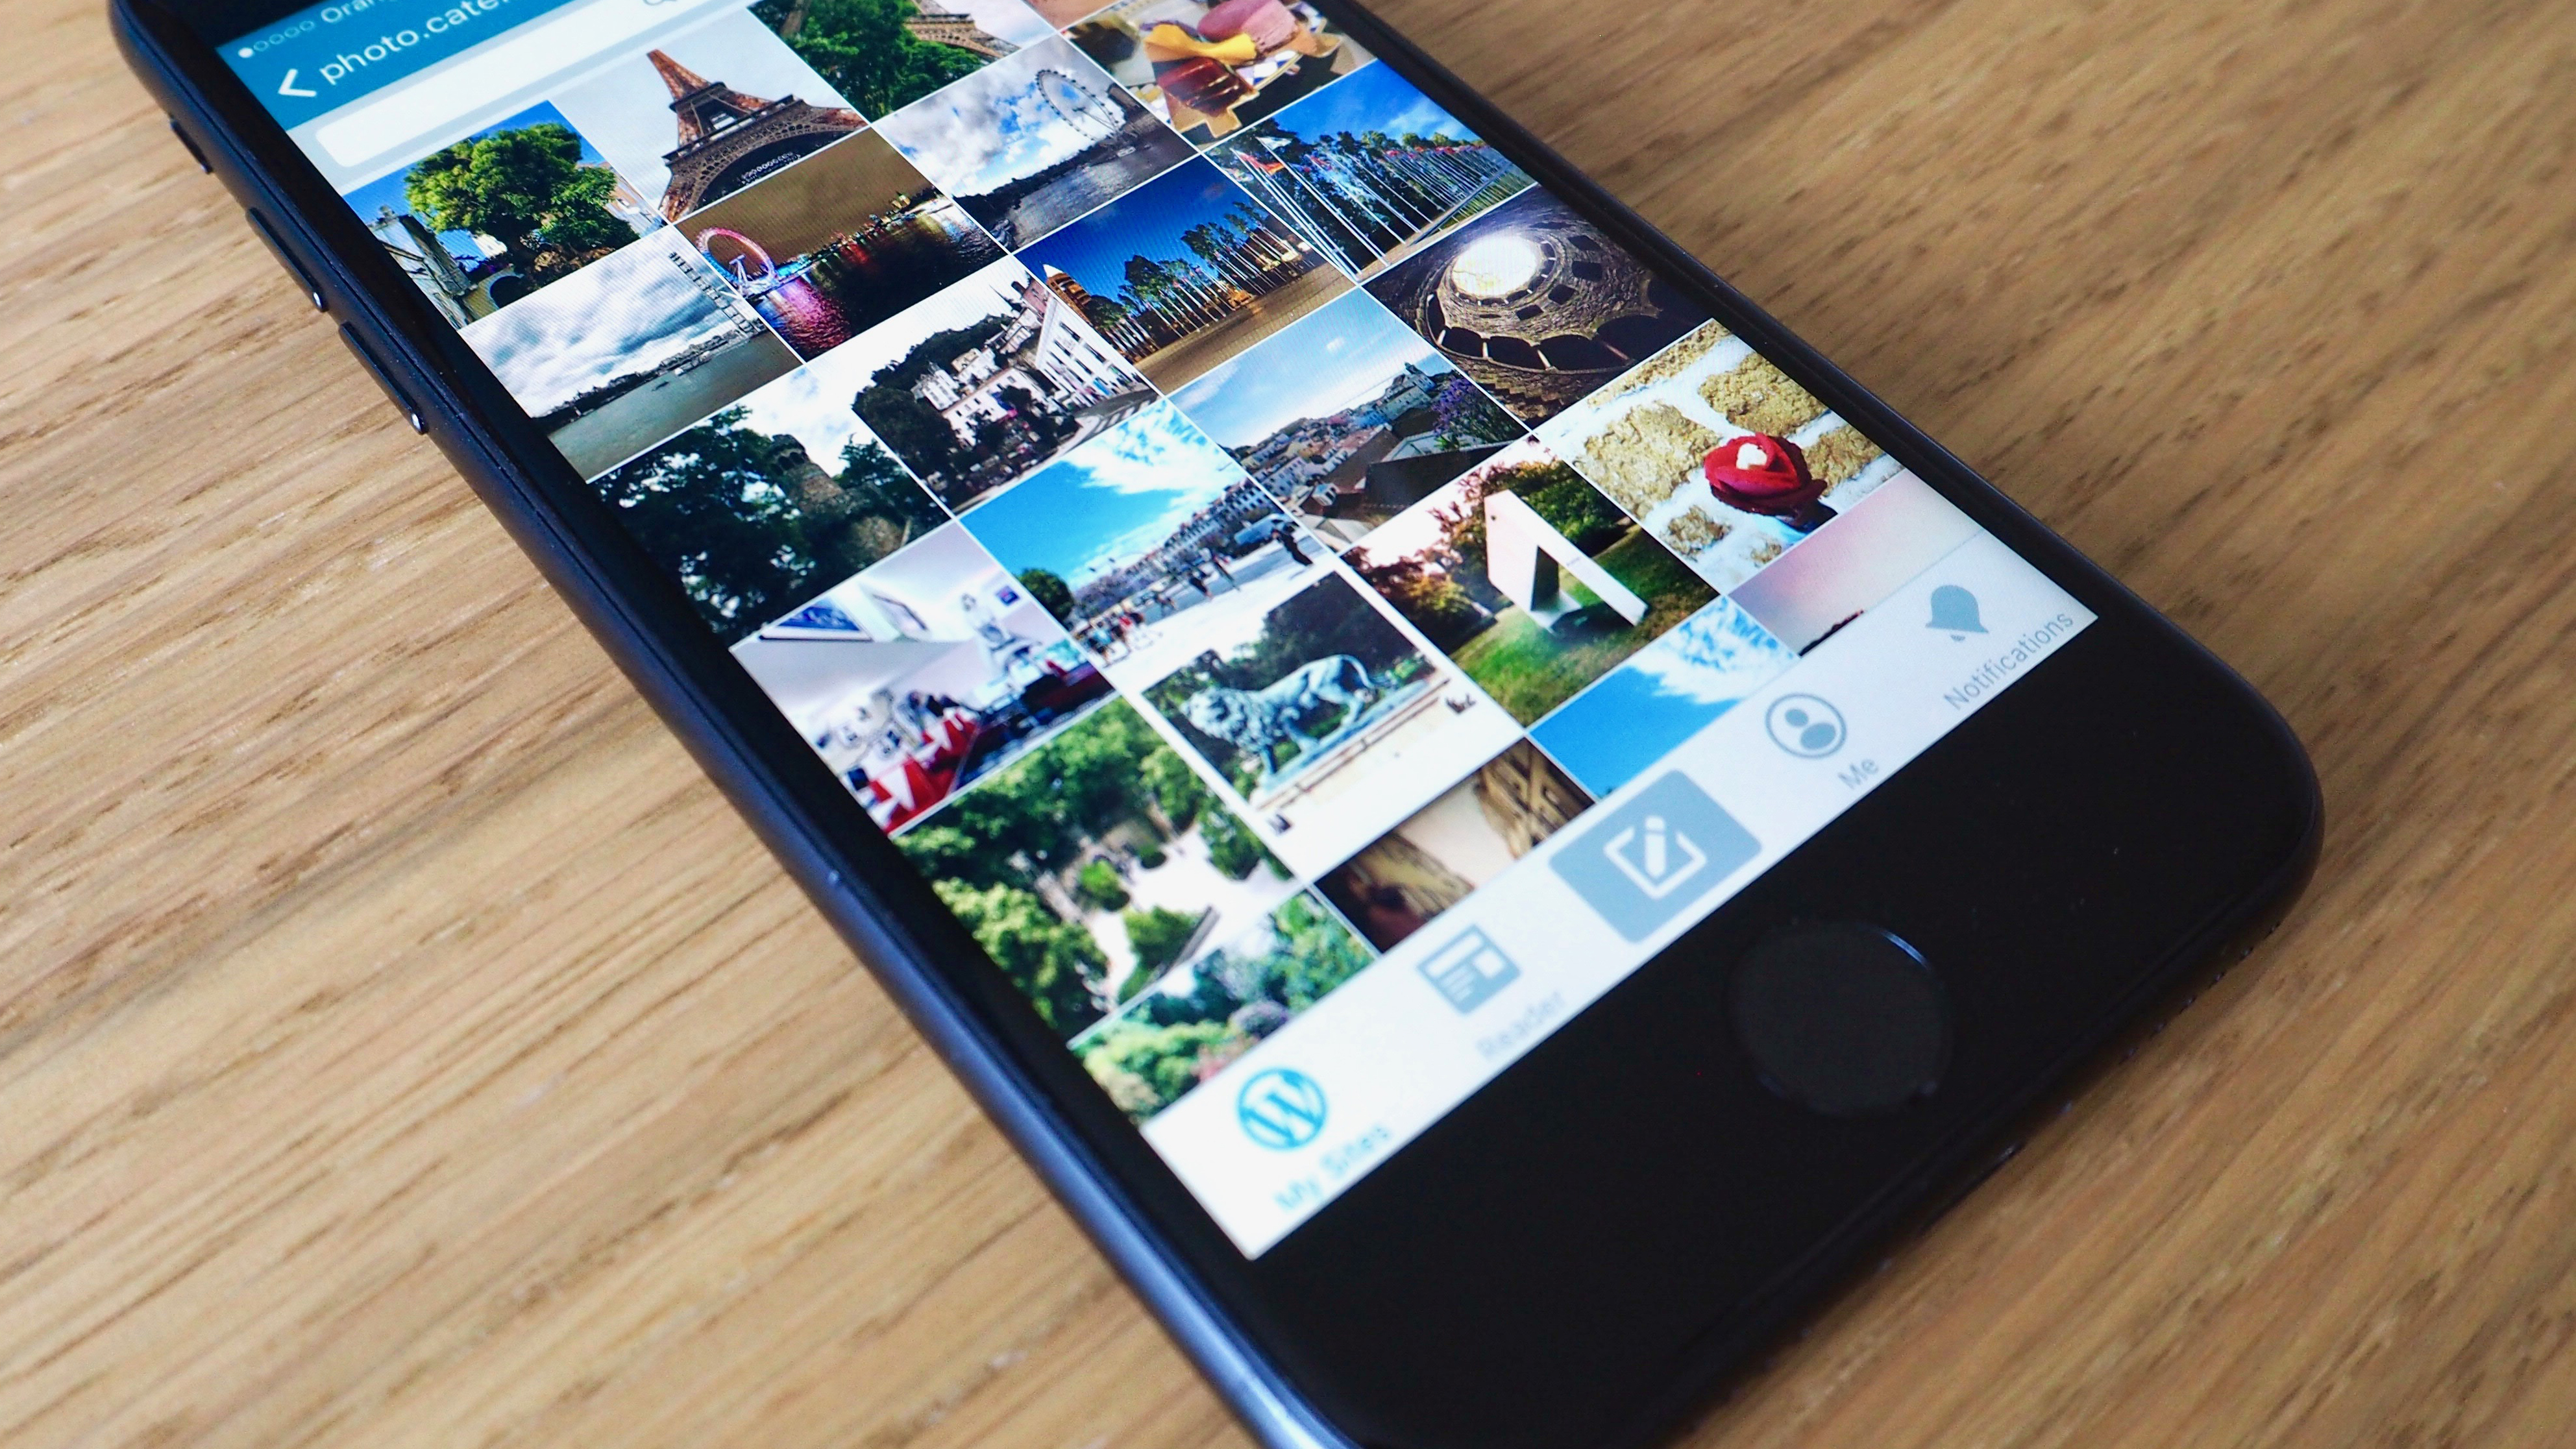 An All-New Media Library for the WordPress iOS App